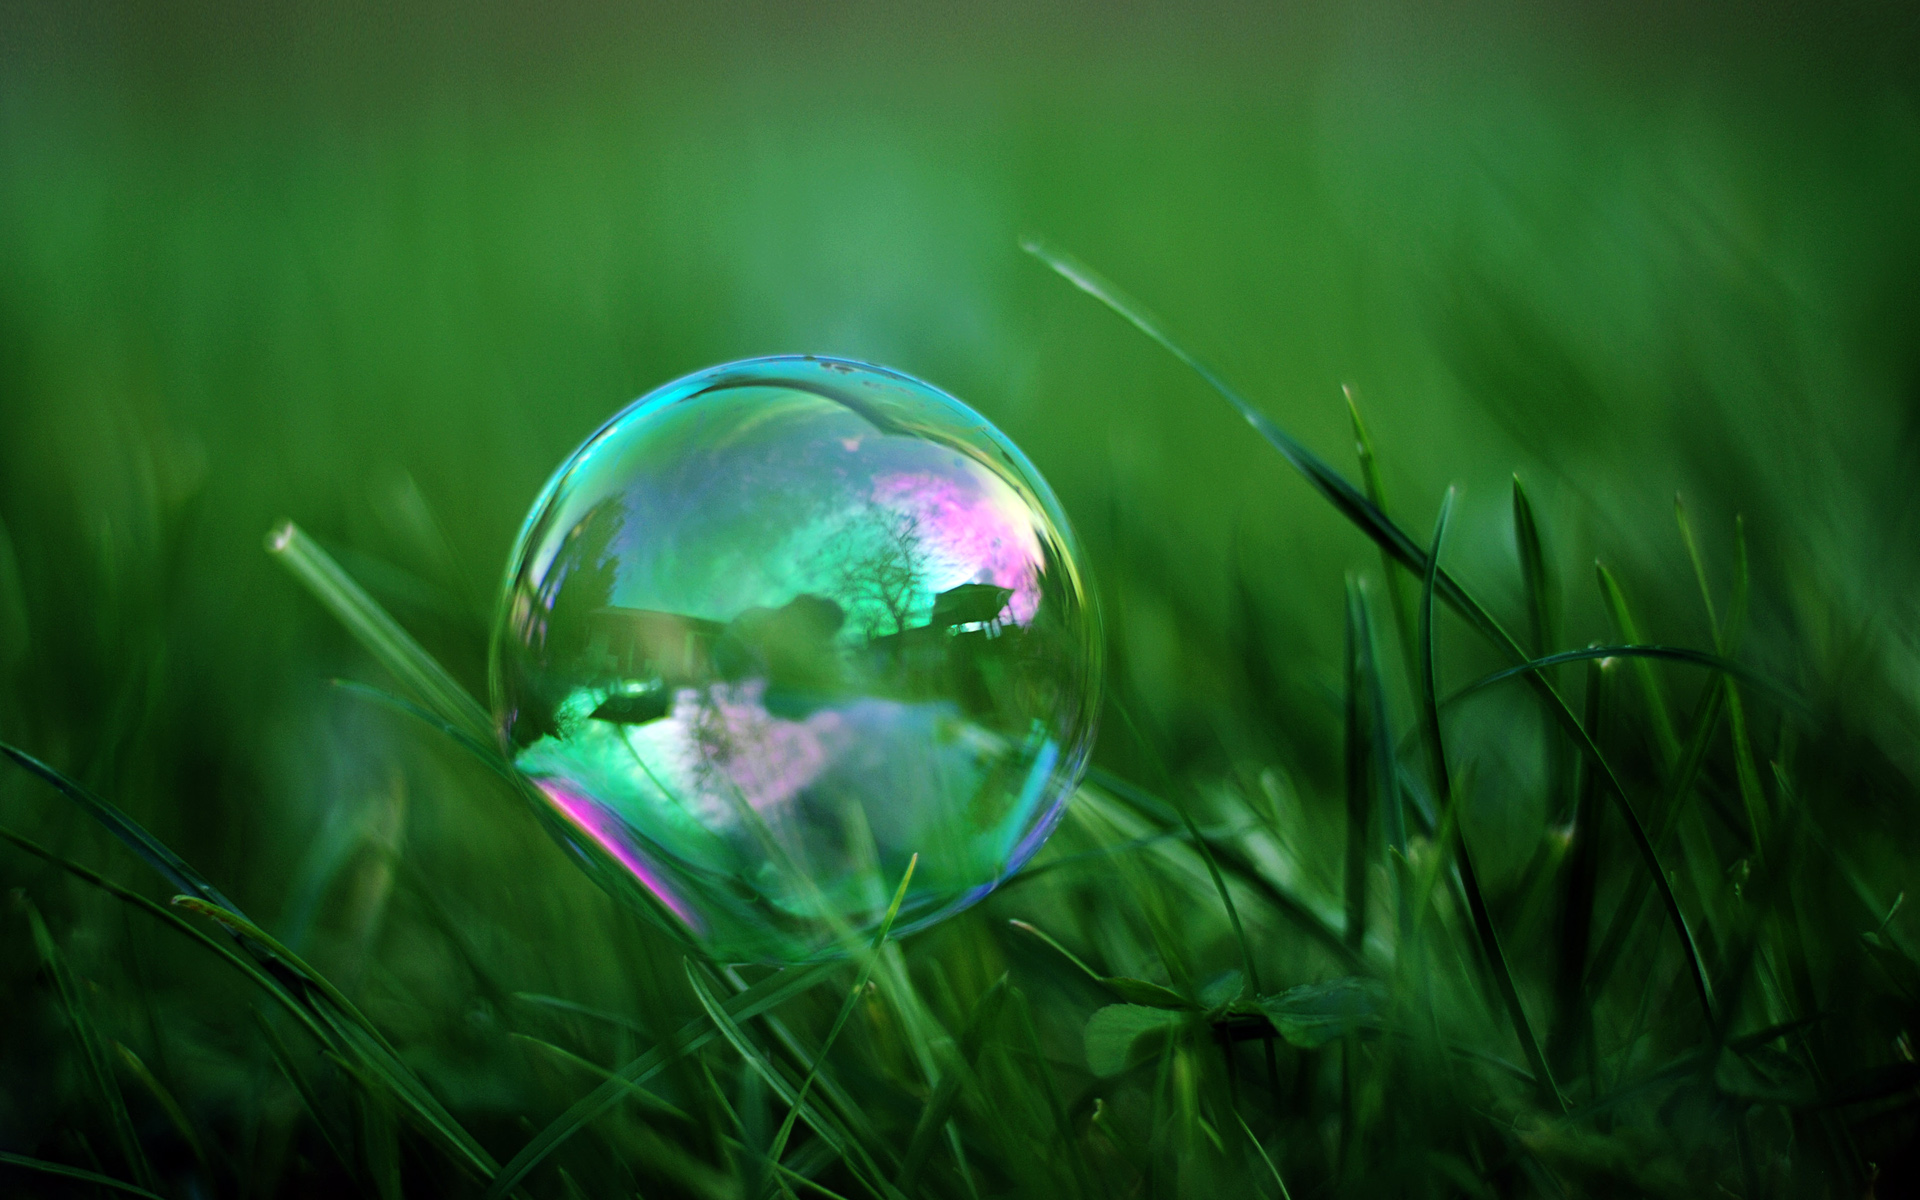 Soap Bubbles Wallpapers 1920x1200 HD Wallpapers 1920x1200